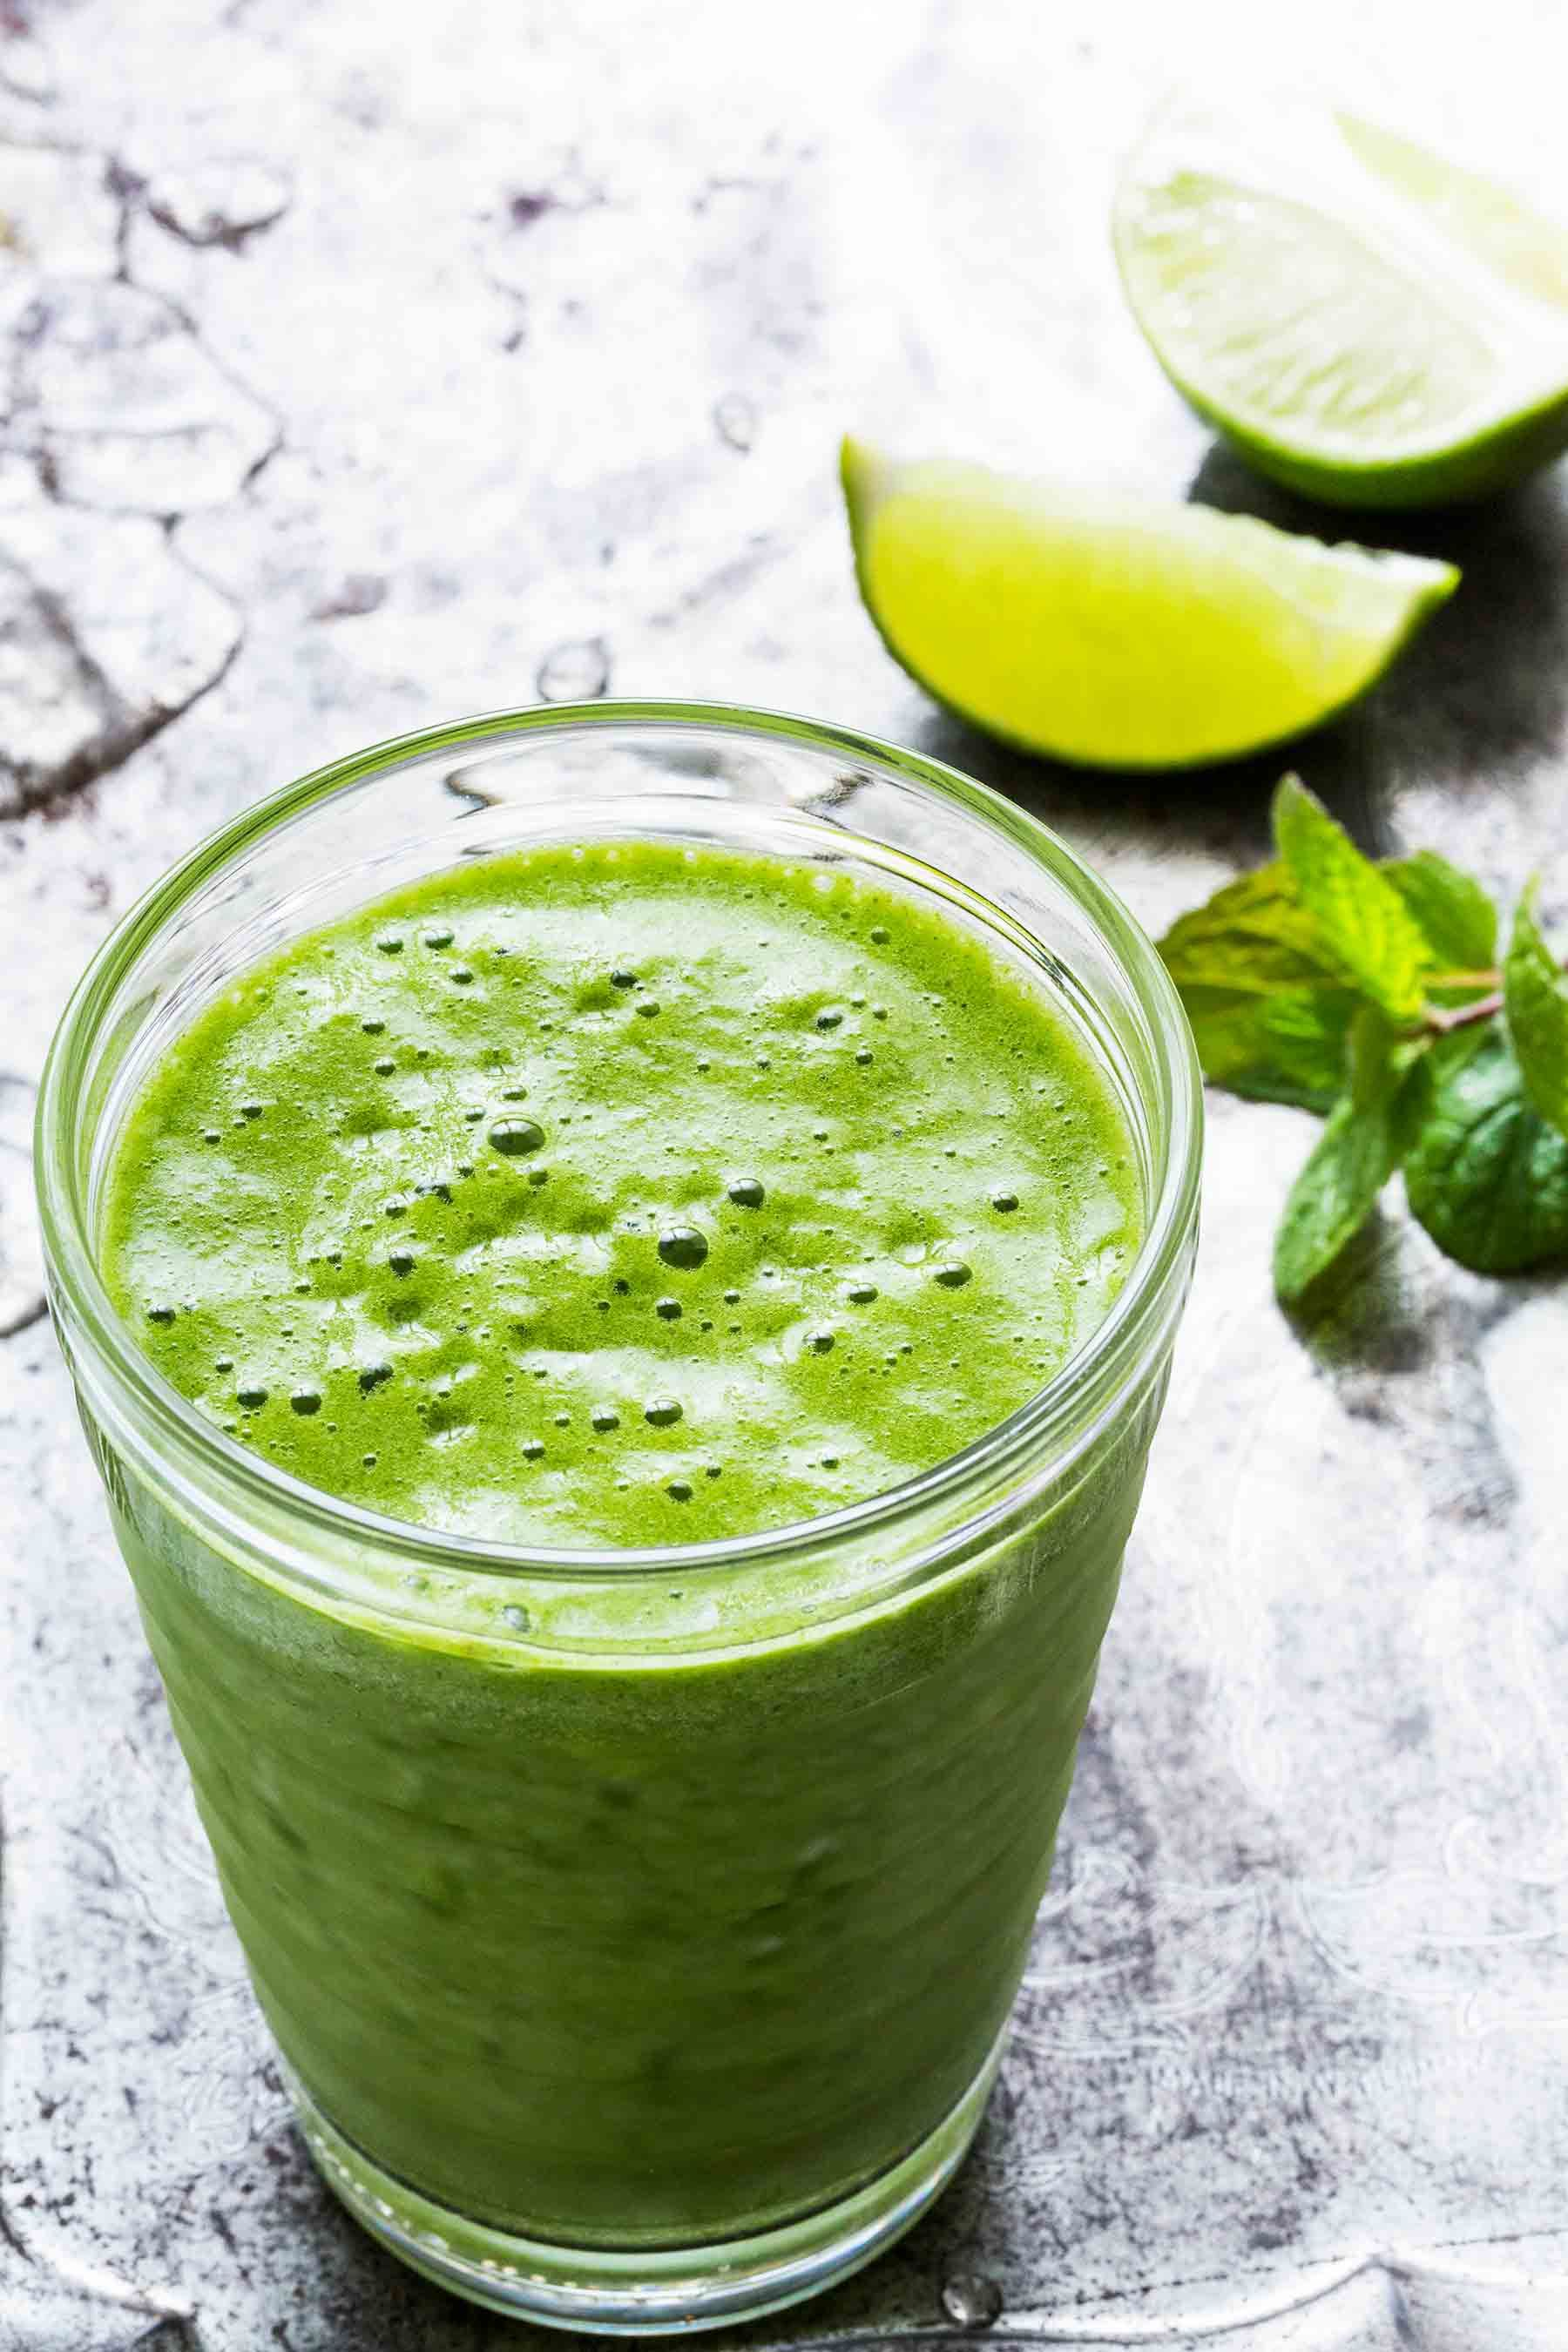 Mojito Smoothie! it will change your mind about green smoothies forever, made with coconut water, kale, pineapple, avocado, mint, and lime. #vegan #paleo